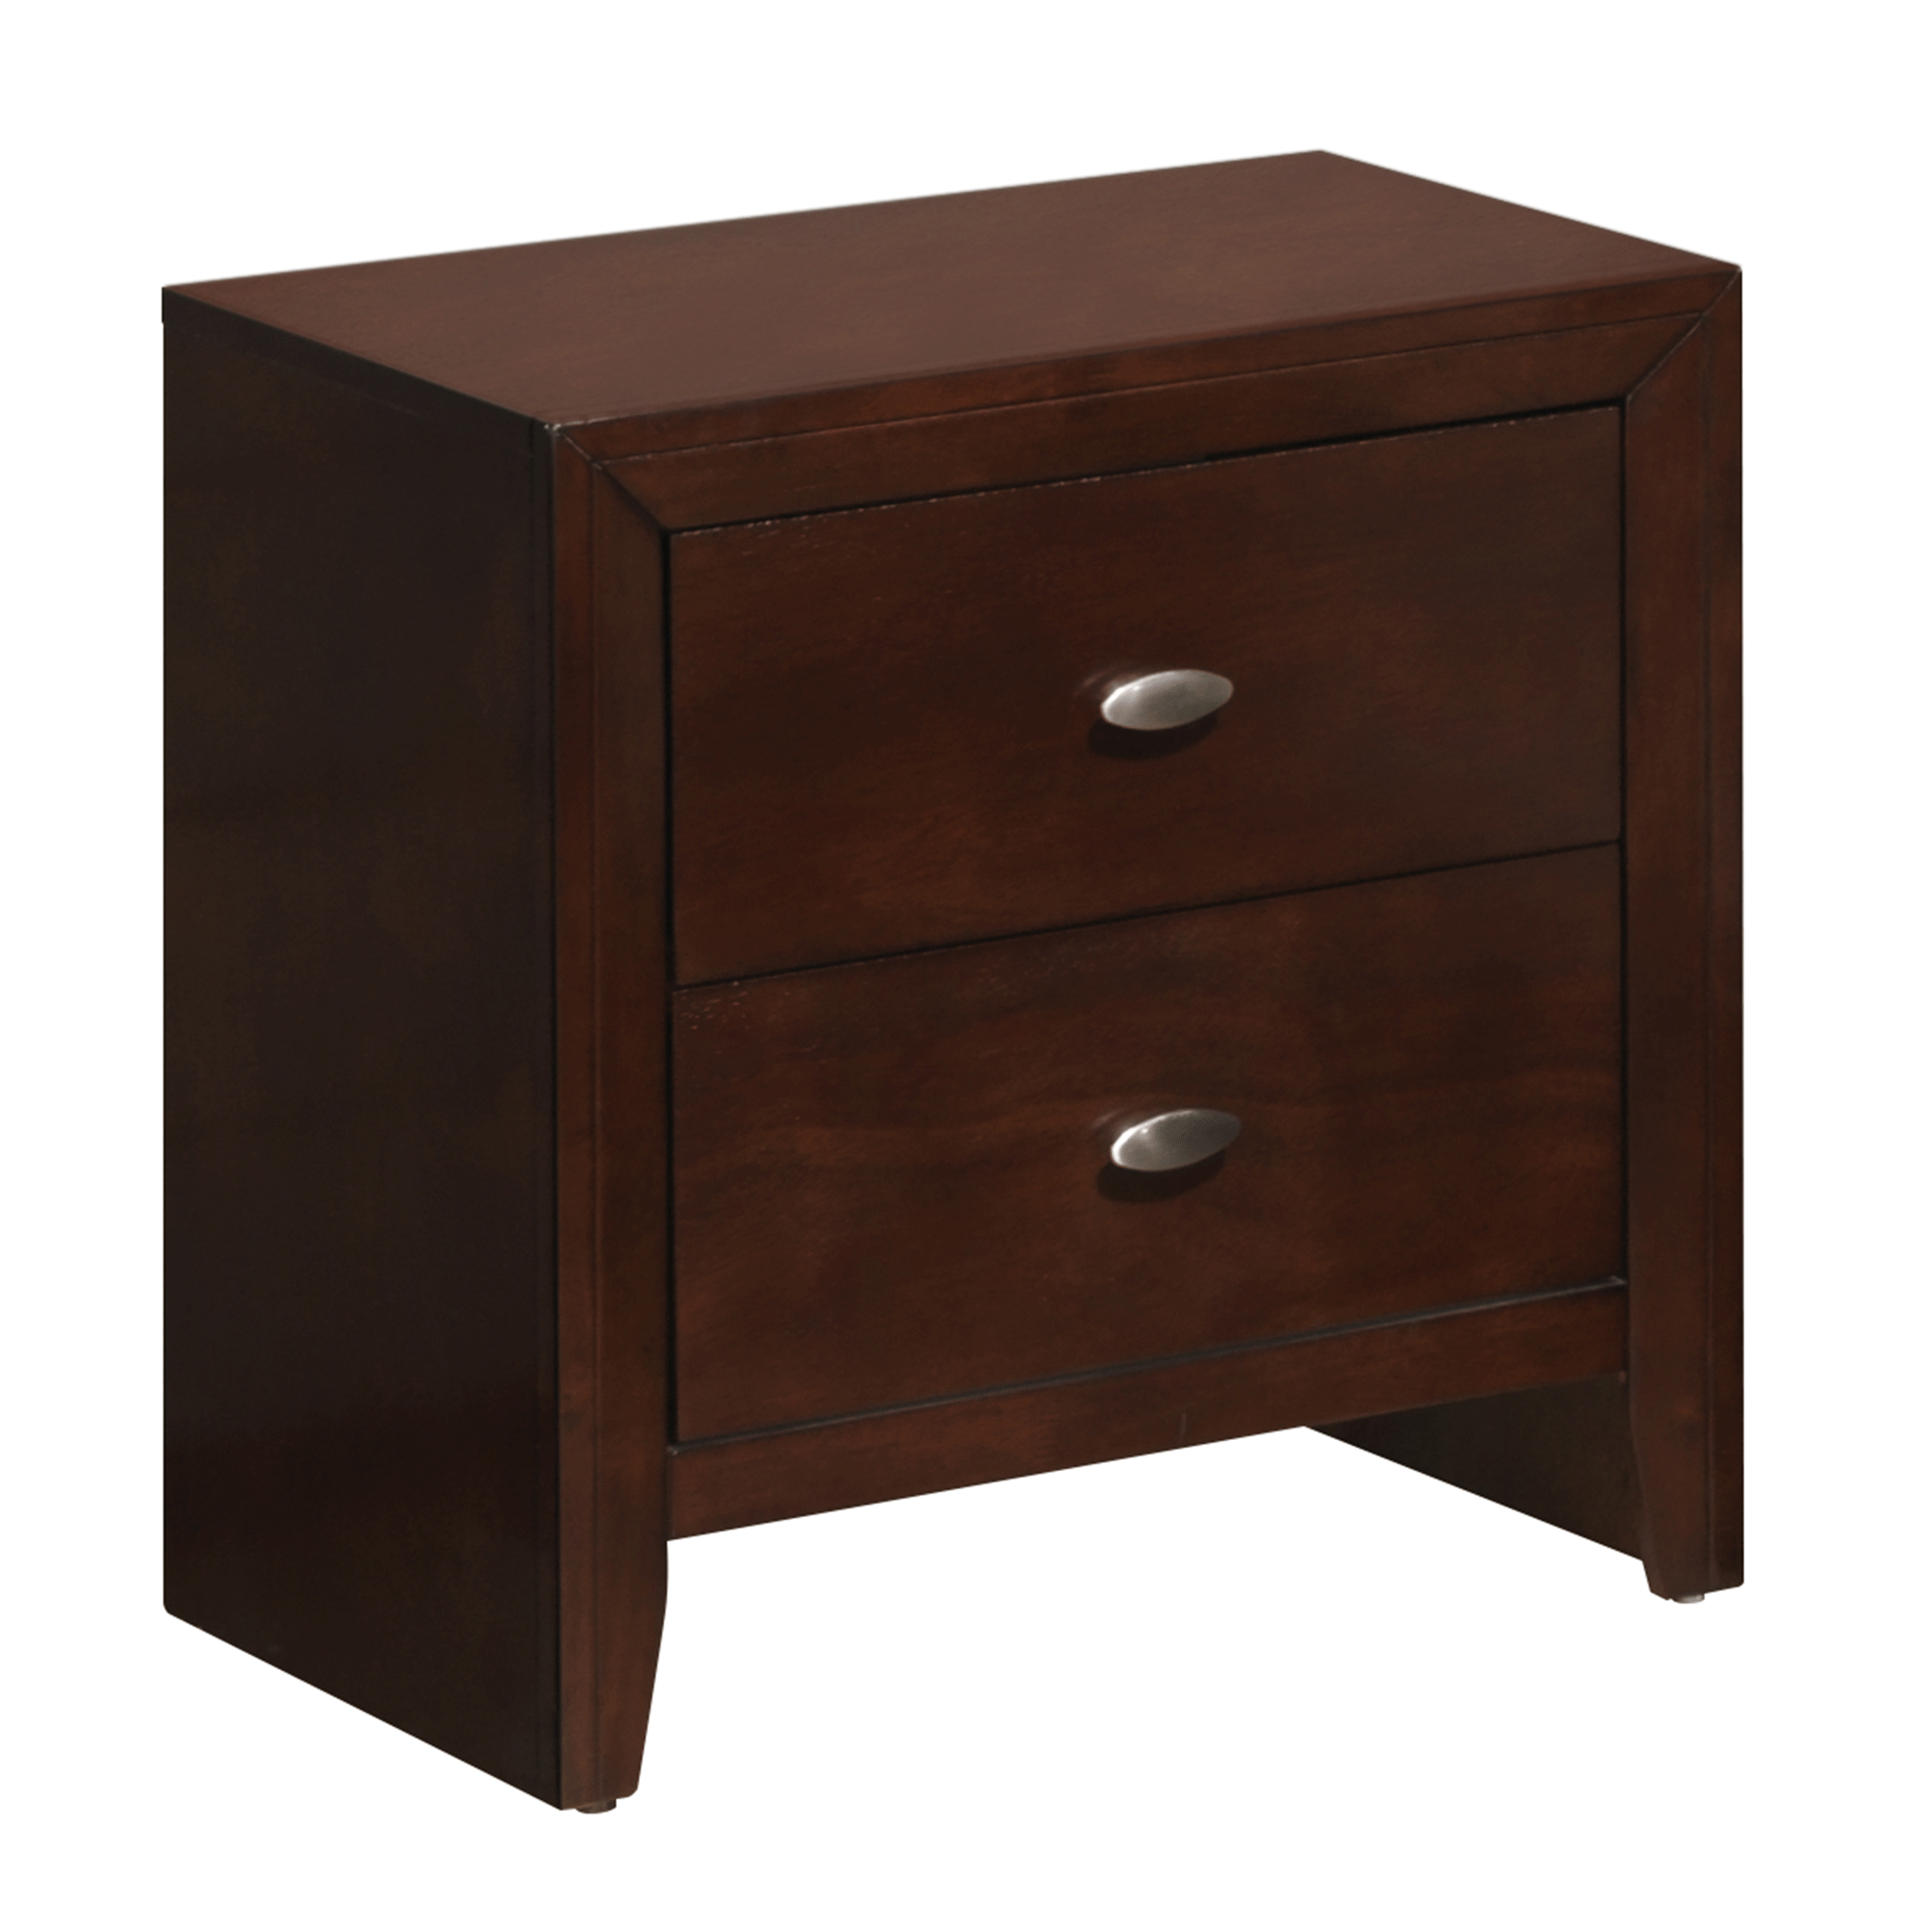 Carolina merlot nightstand by global furniture for Carolina furniture